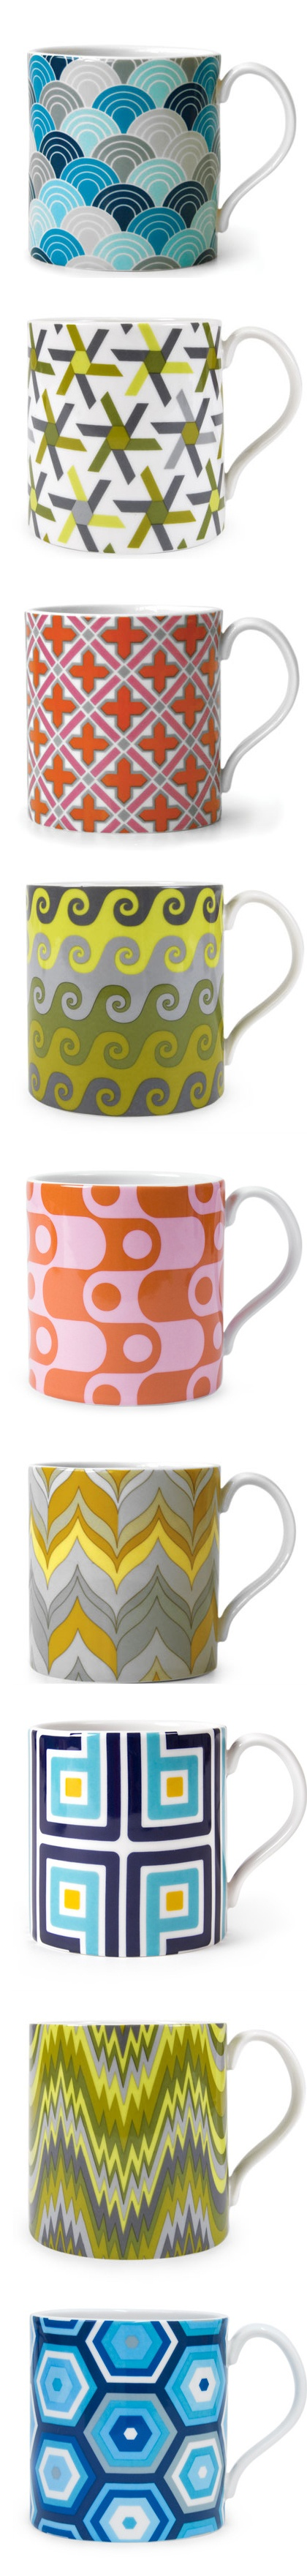 Carnaby Mugs | Jonathan Adler I scaled and applied colors for all these mugs